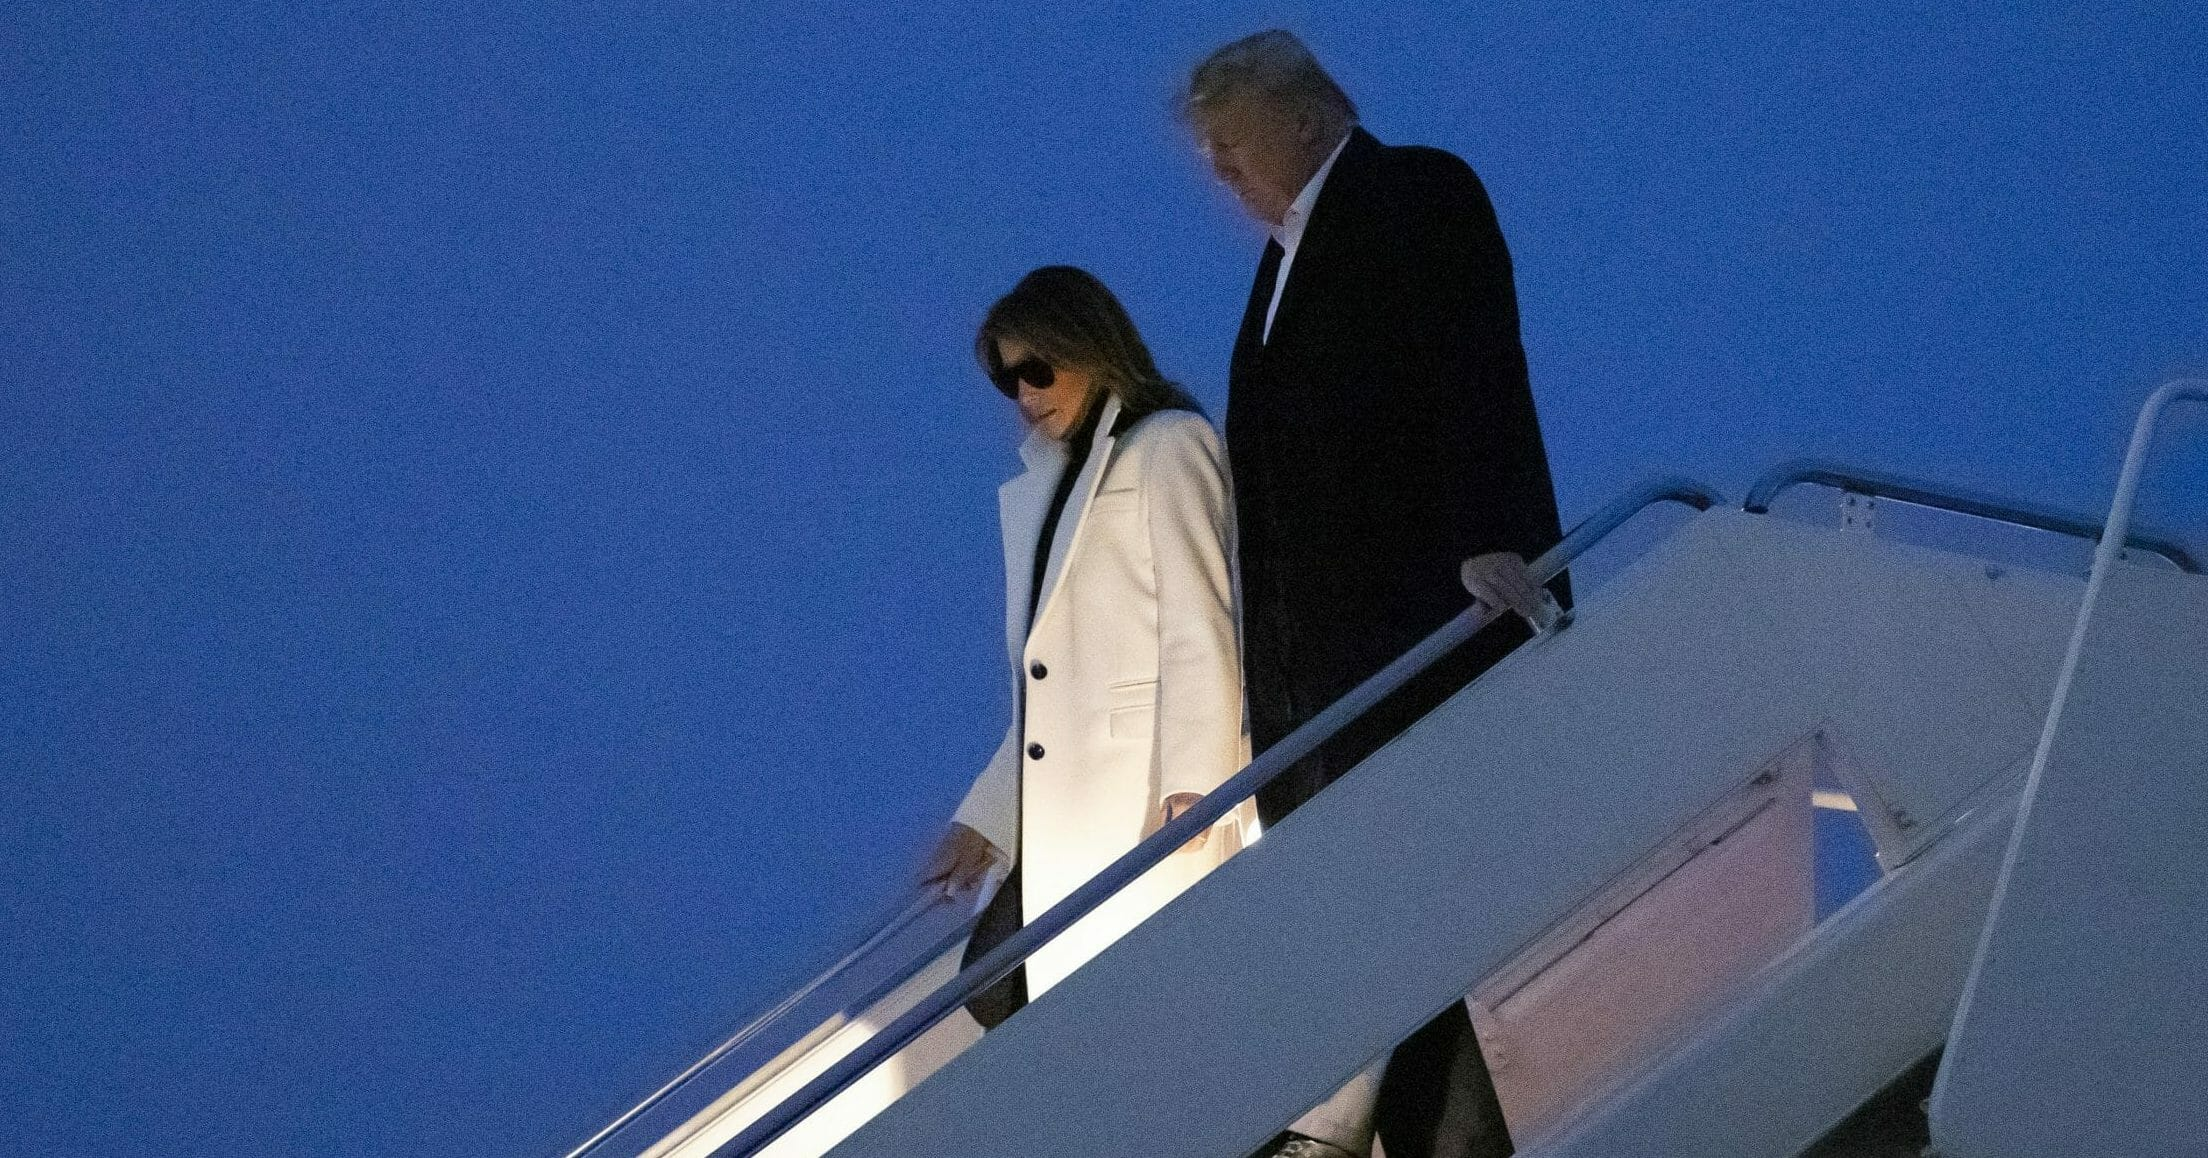 President Donald Trump and first lady Melania Trump step off Air Force One upon arrival at Andrews Air Force Base, Maryland, on Feb. 26, 2020, after a trip to India.